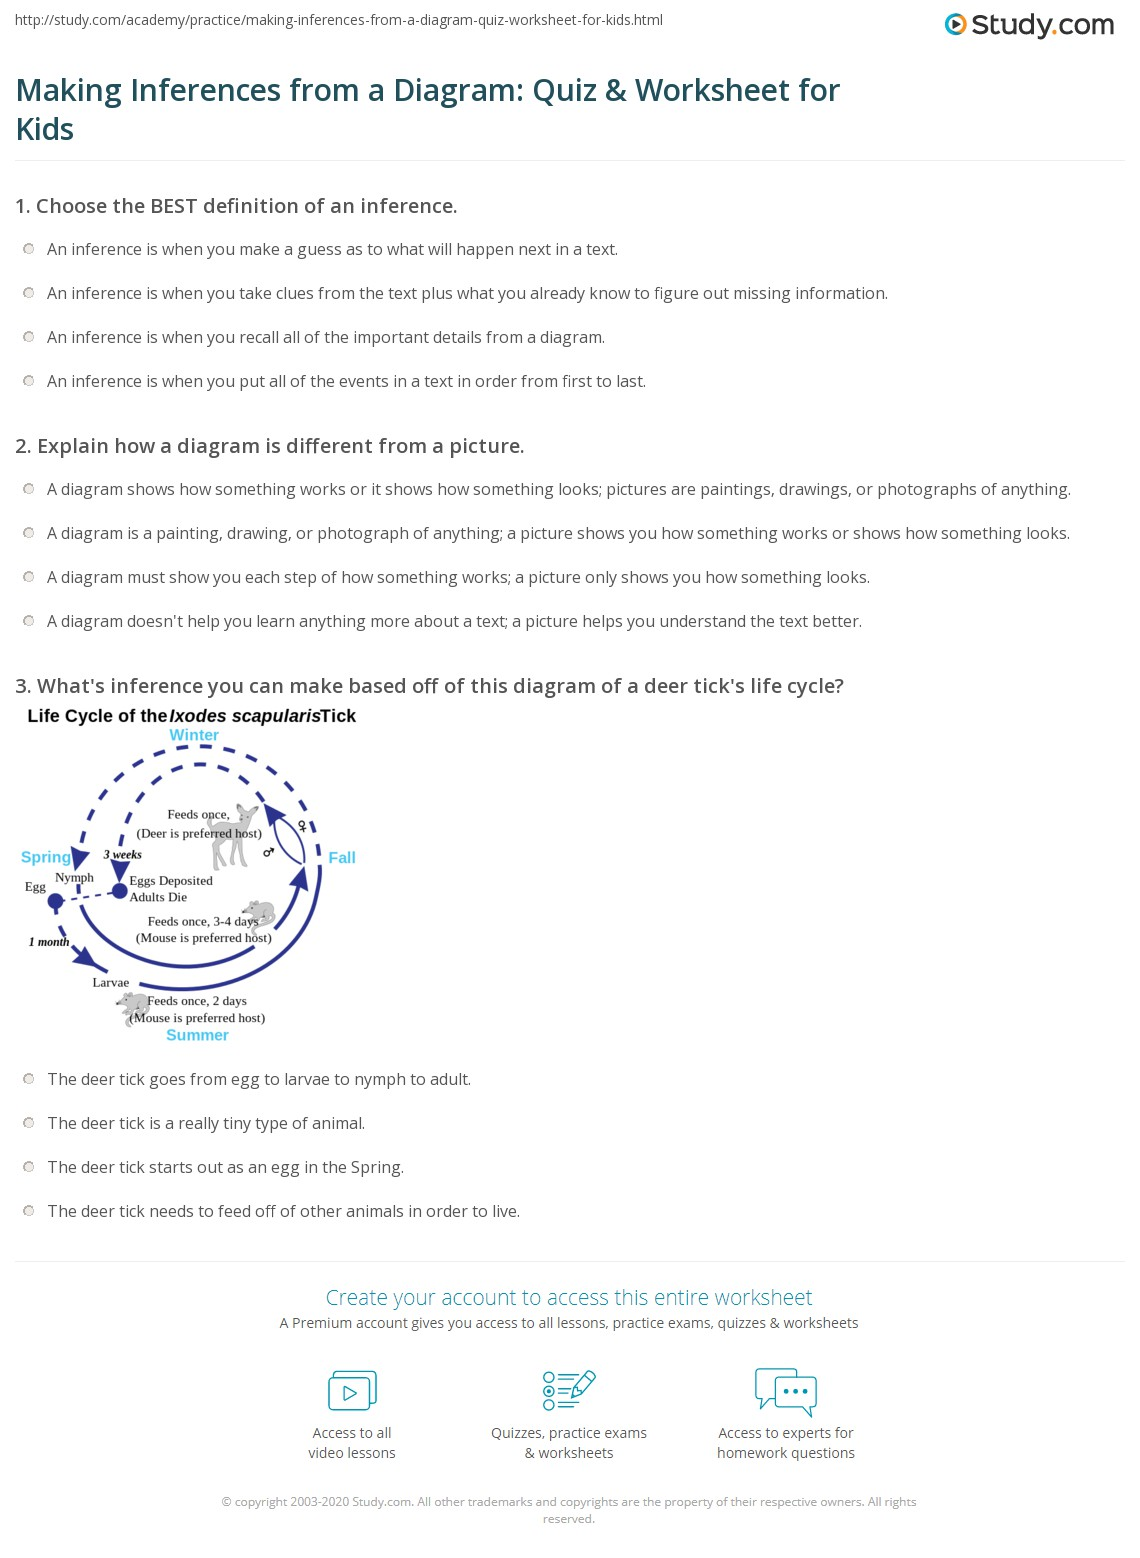 Making    Inferences from a    Diagram     Quiz   Worksheet for